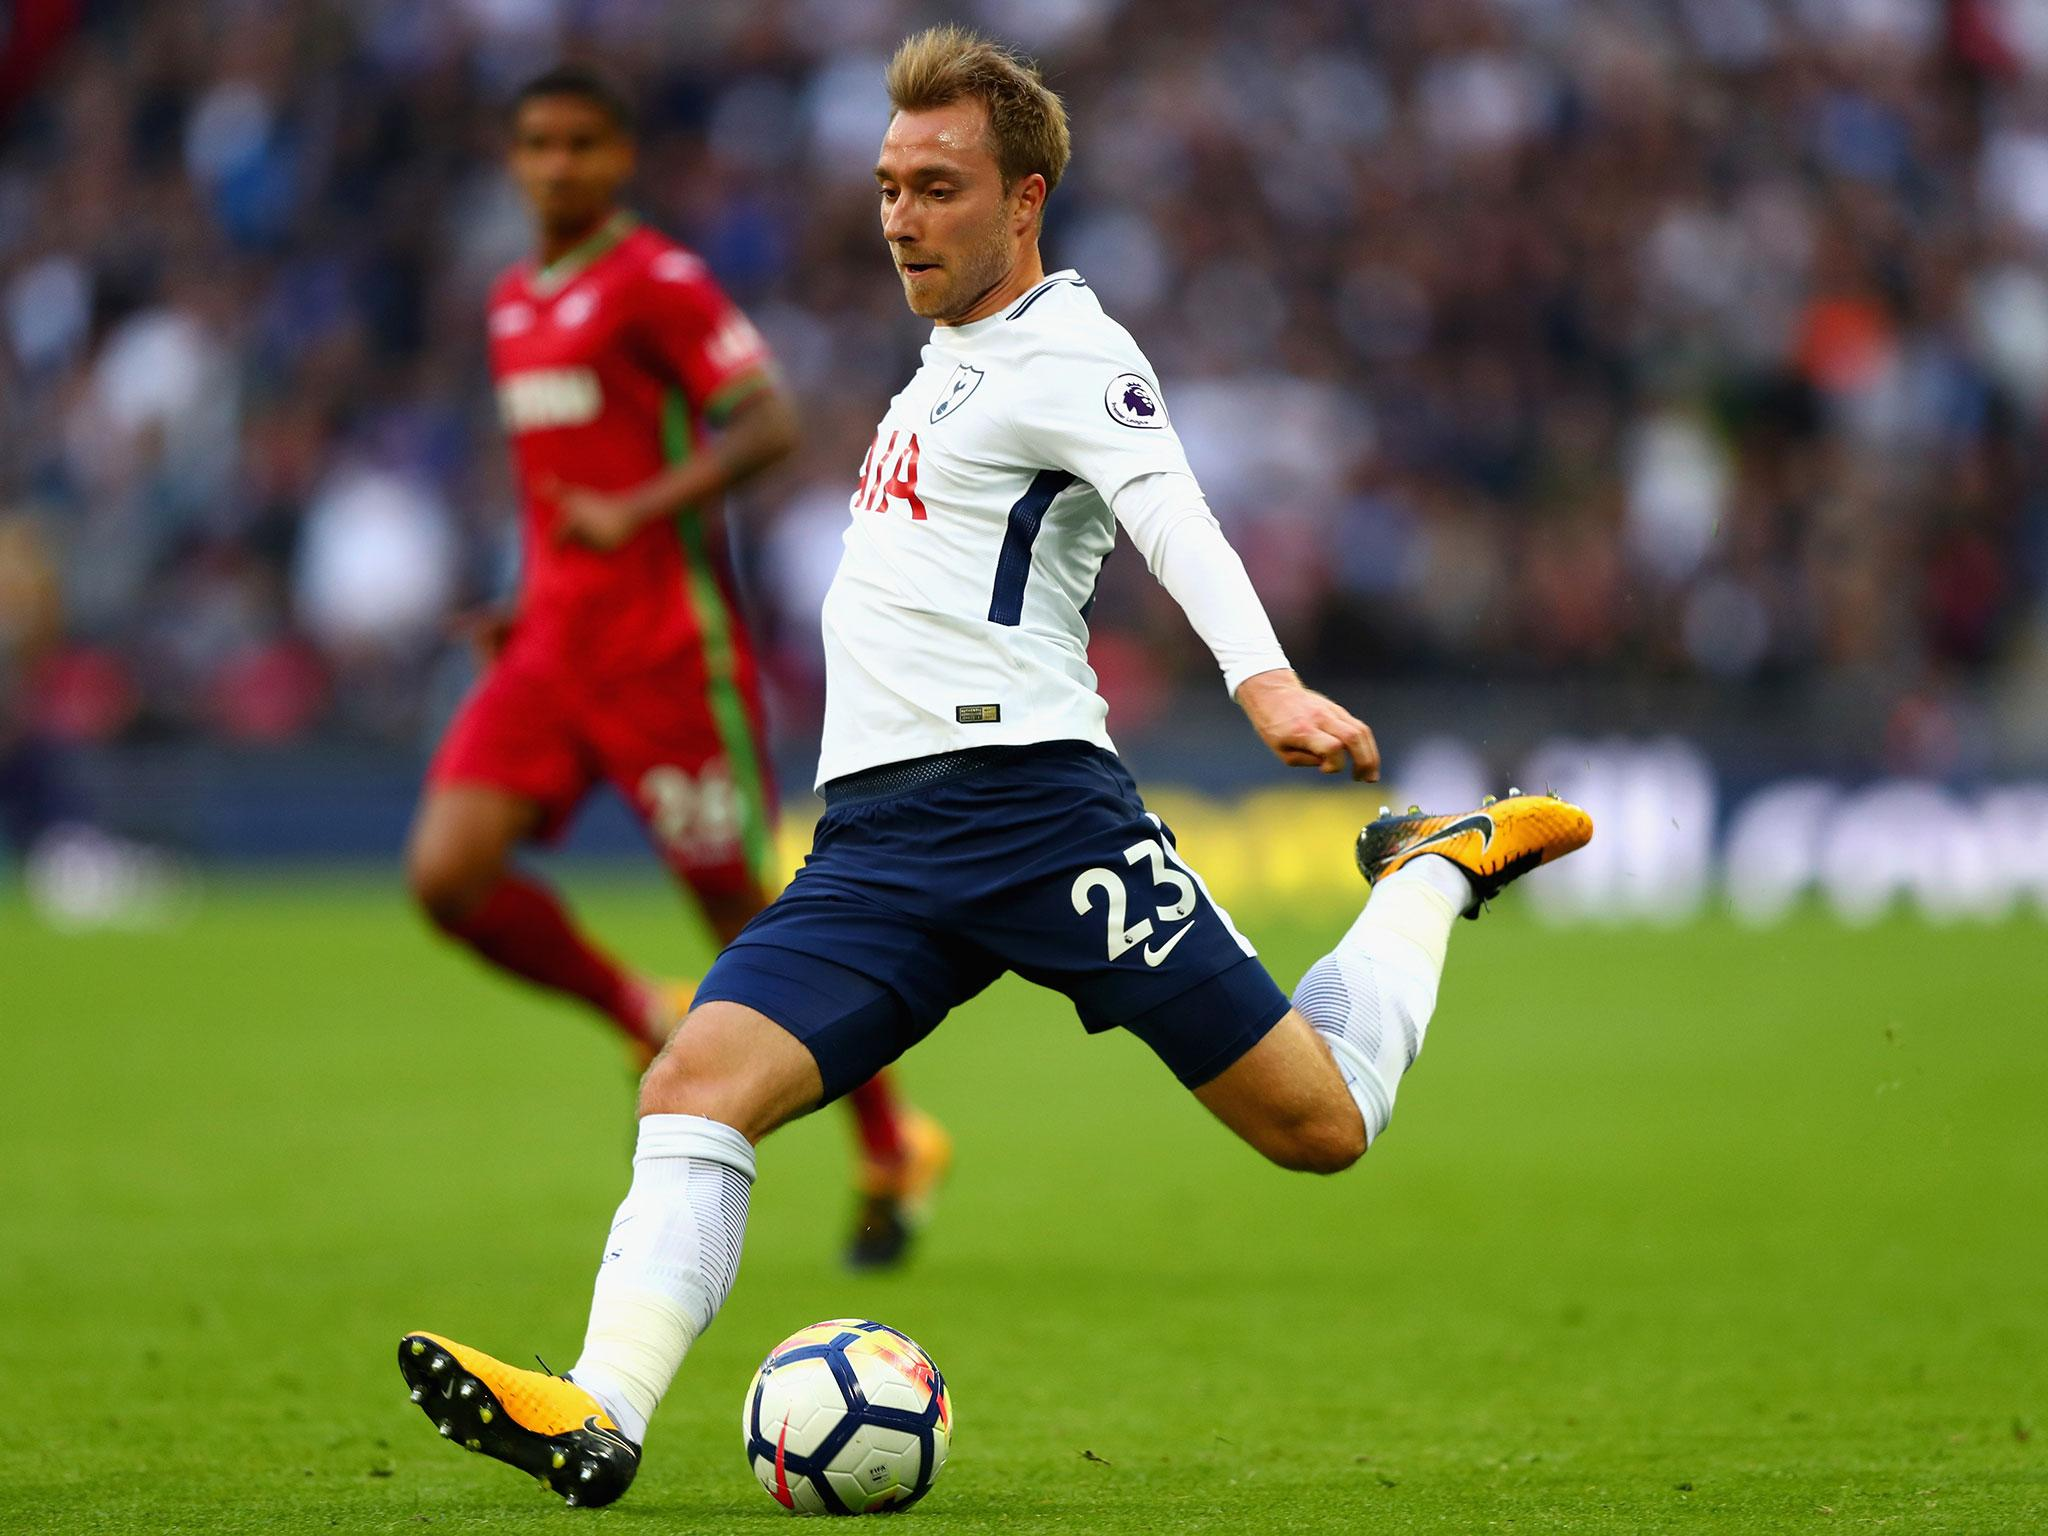 Christian Eriksen ruled out of Champions League clash with illness